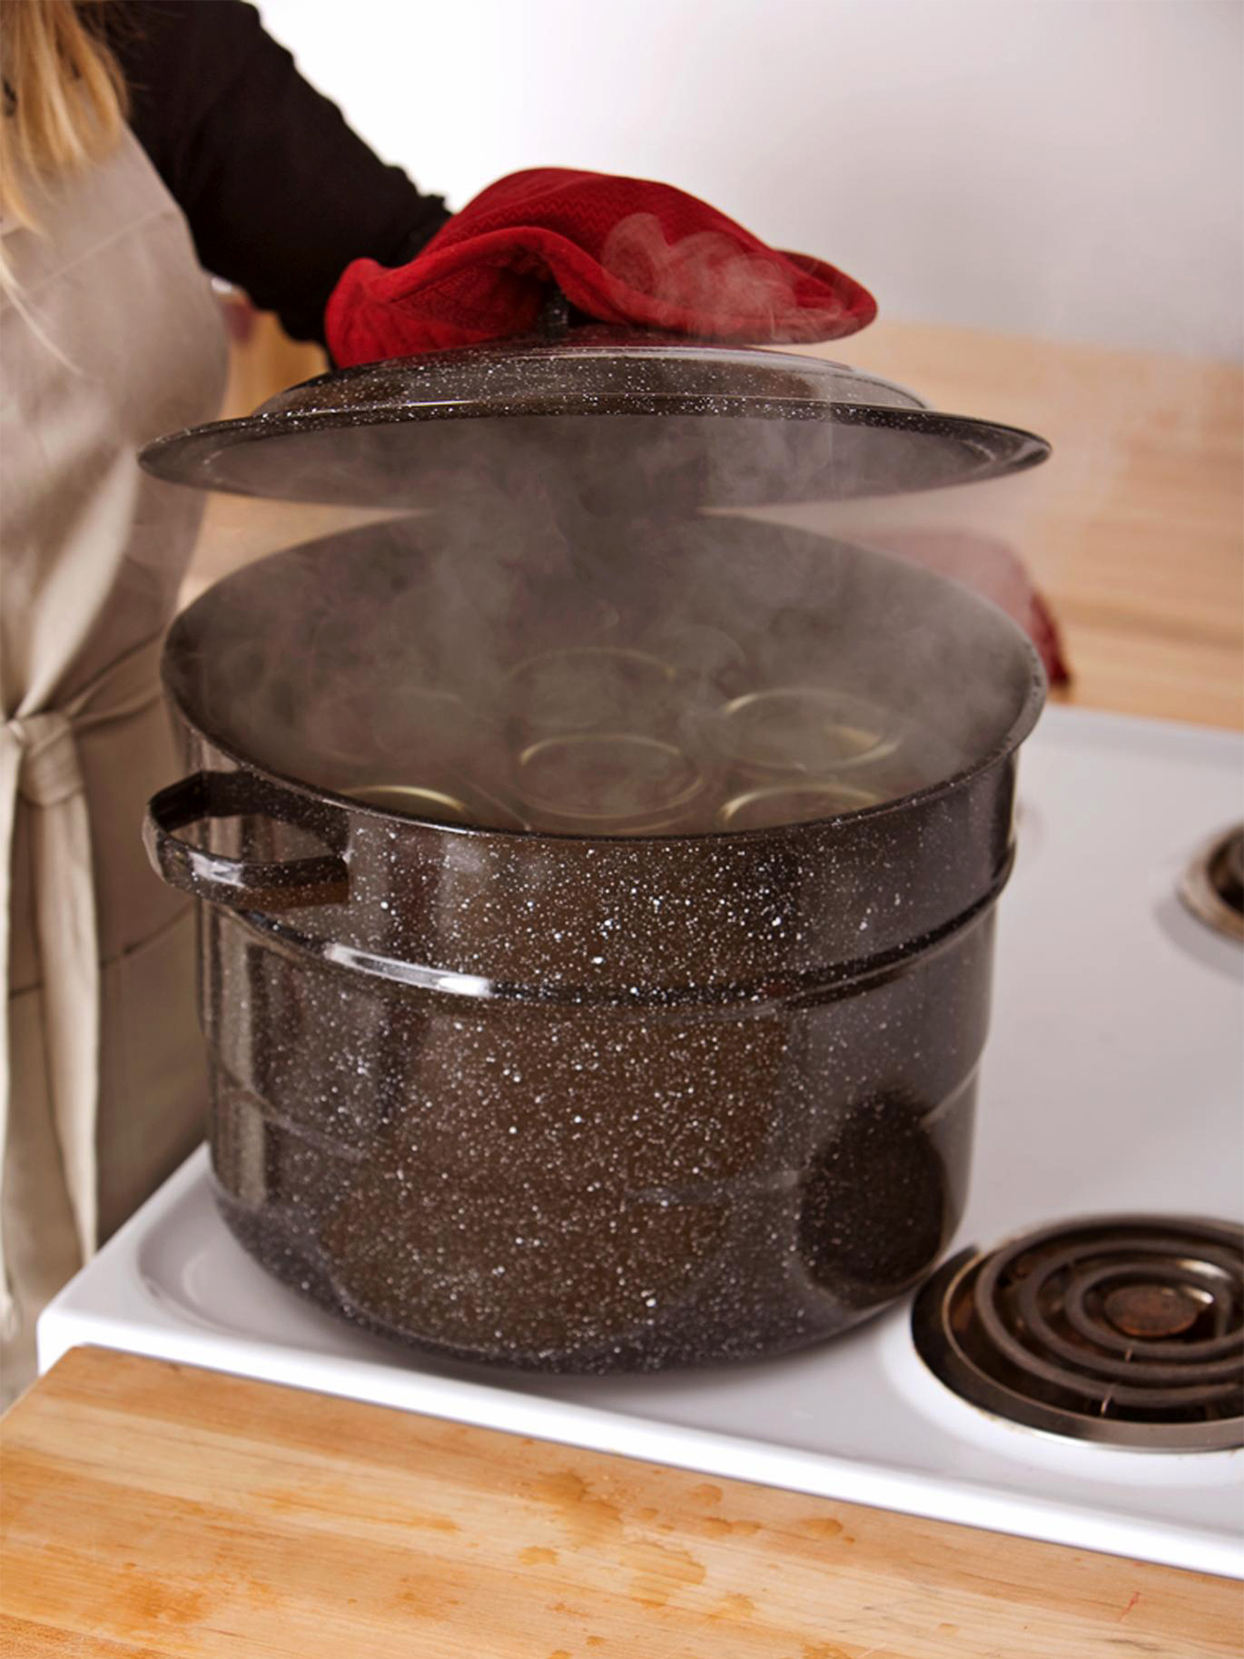 Processing jars in boiling water canner